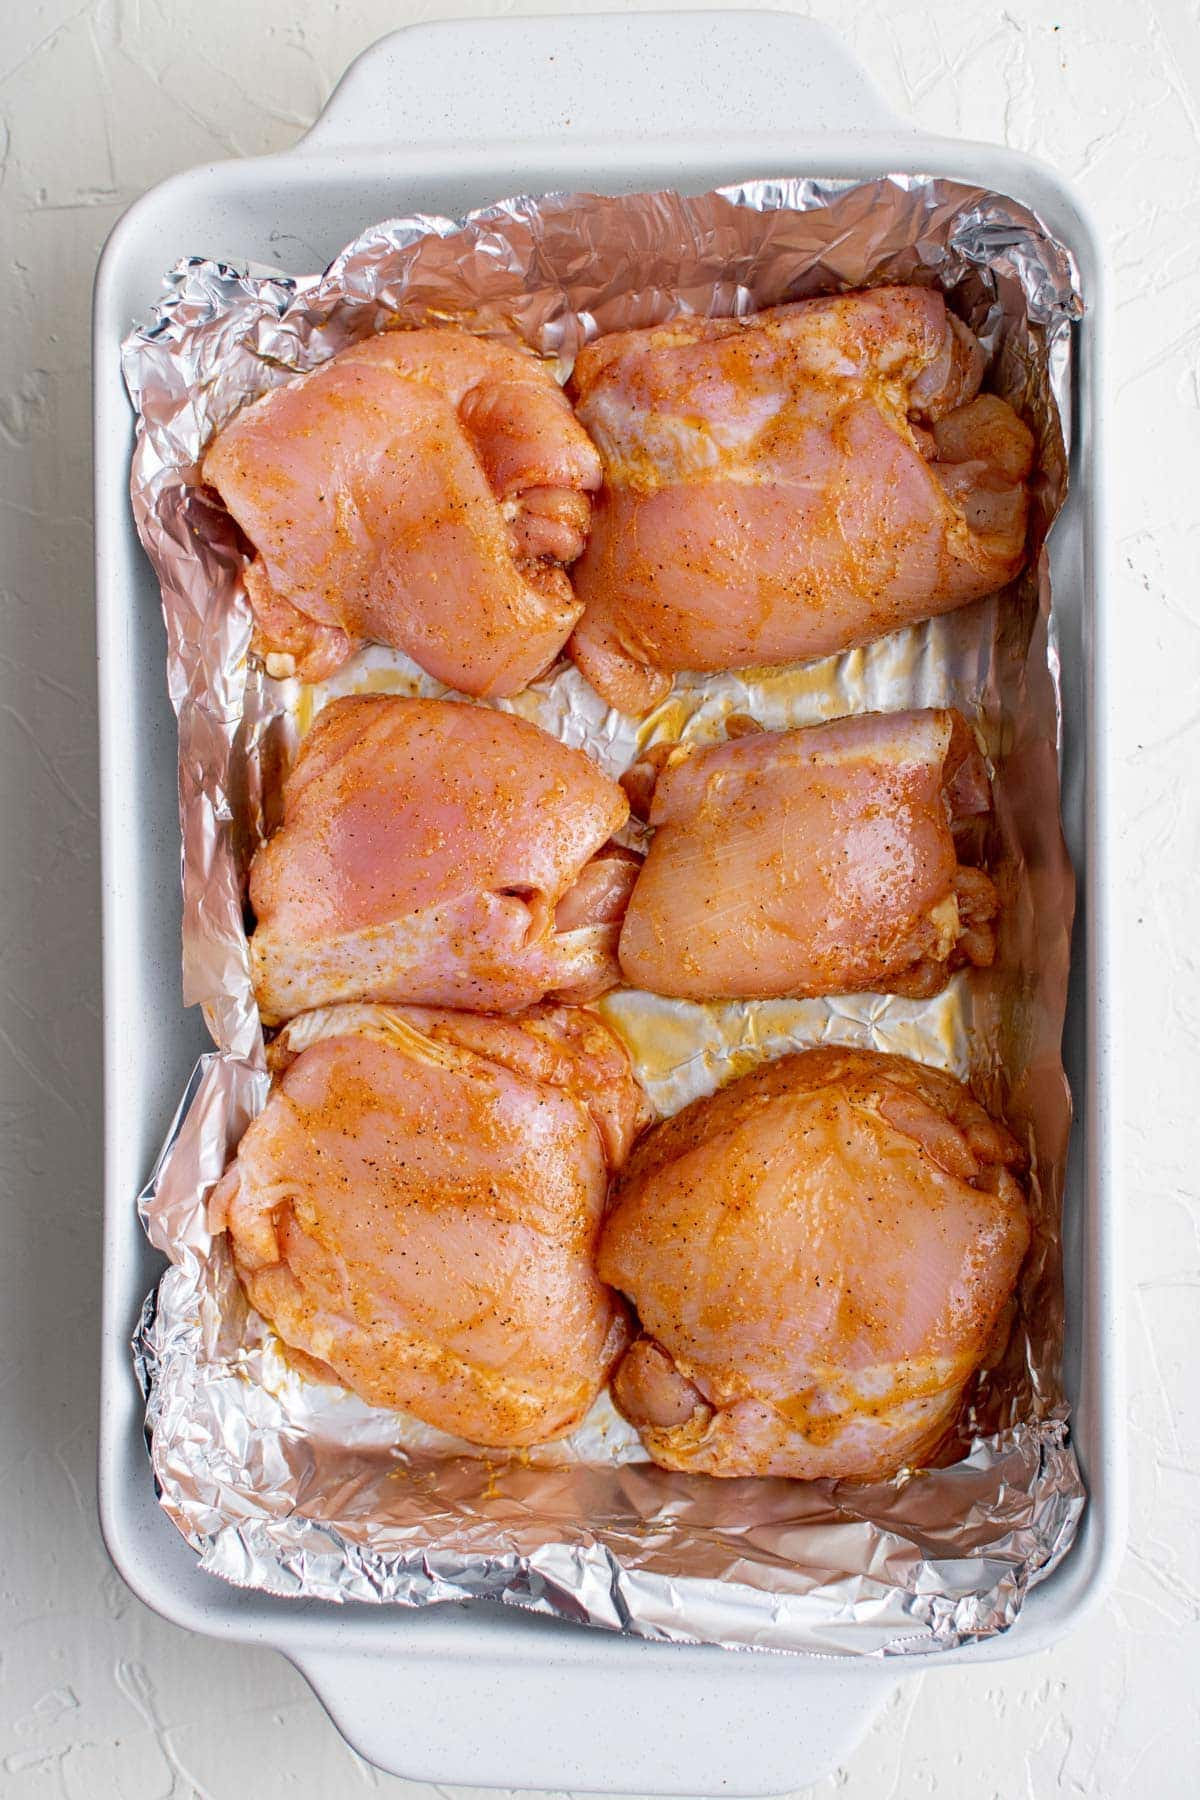 raw boneless chicken thighs, baking dish with foil